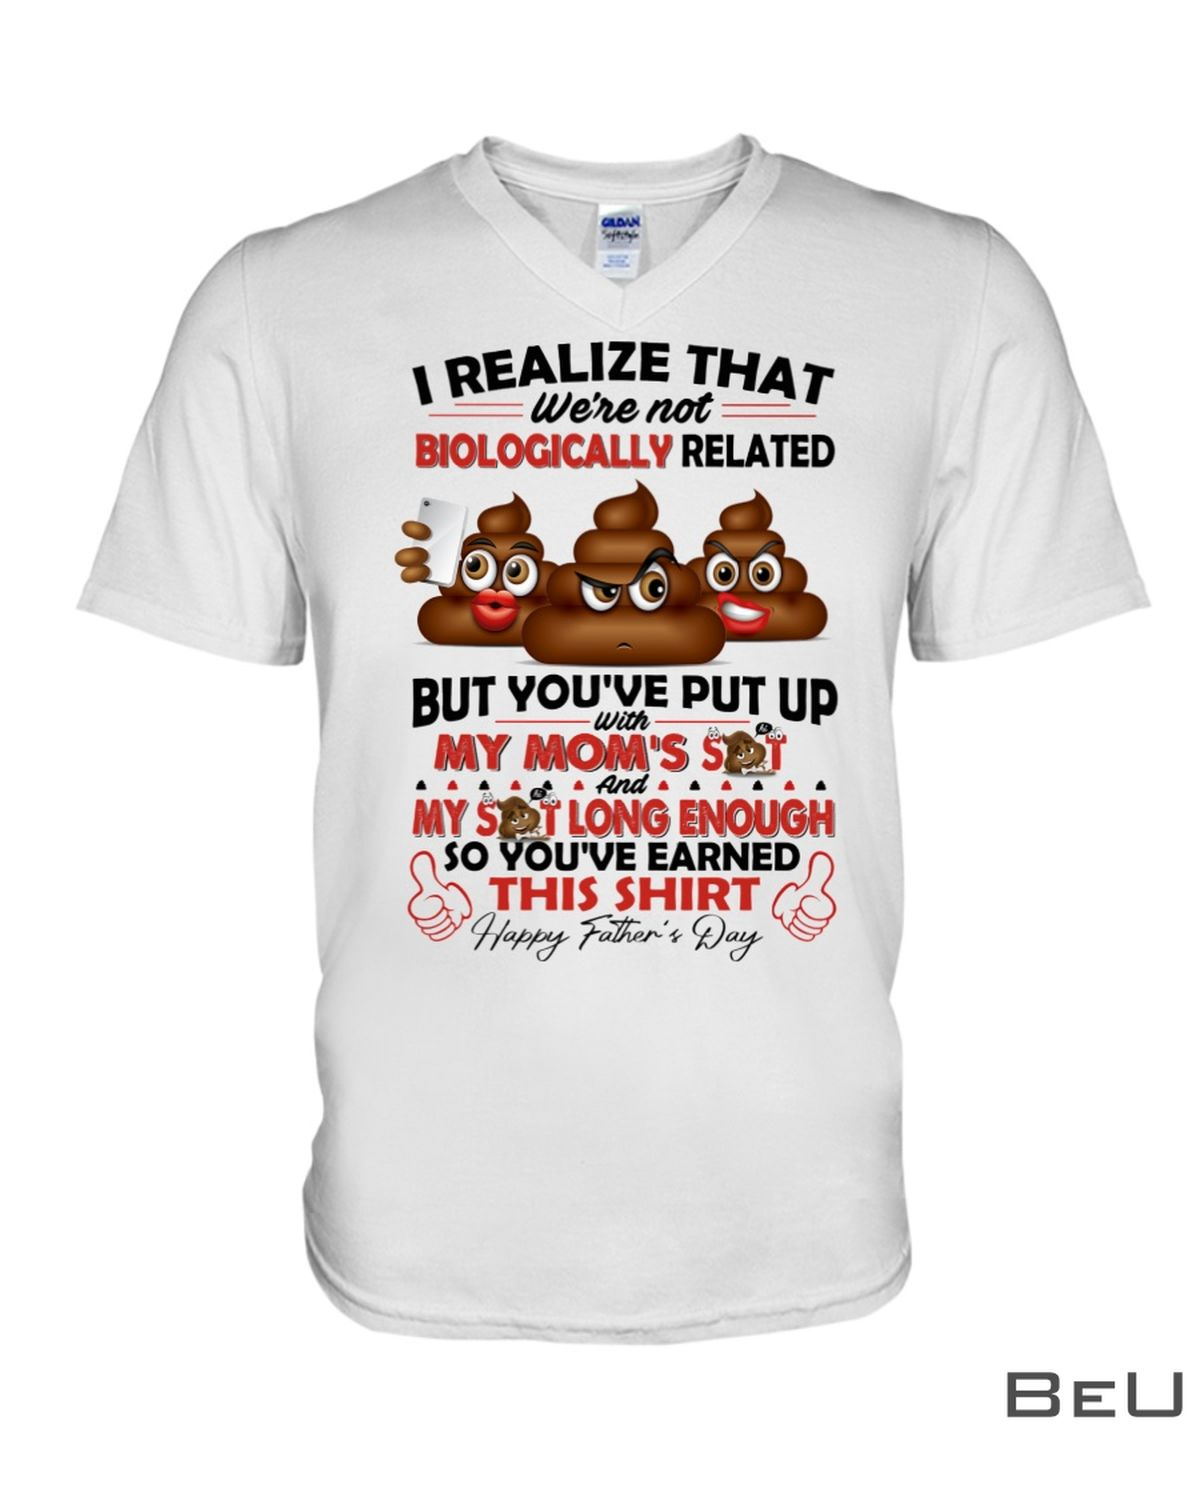 I Realize That We're Not Biologically Related But You've Put Up With My Mom's Shit Shirtx